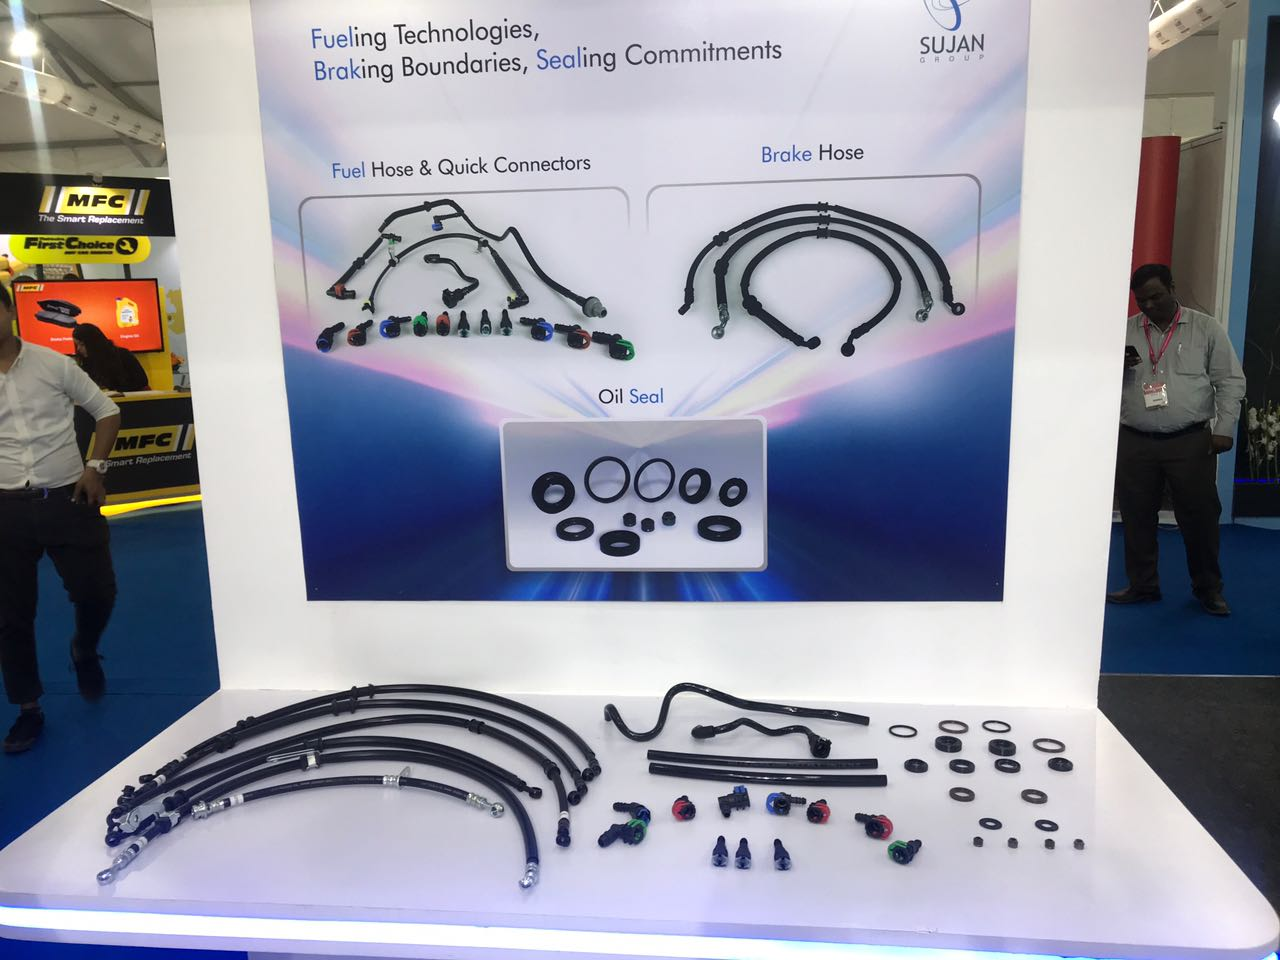 <p>Sujan group has also displayed a BS6 compliant oil seal, fuel hose and quick connectors. Takes care of high pressure fuel injection.</p>